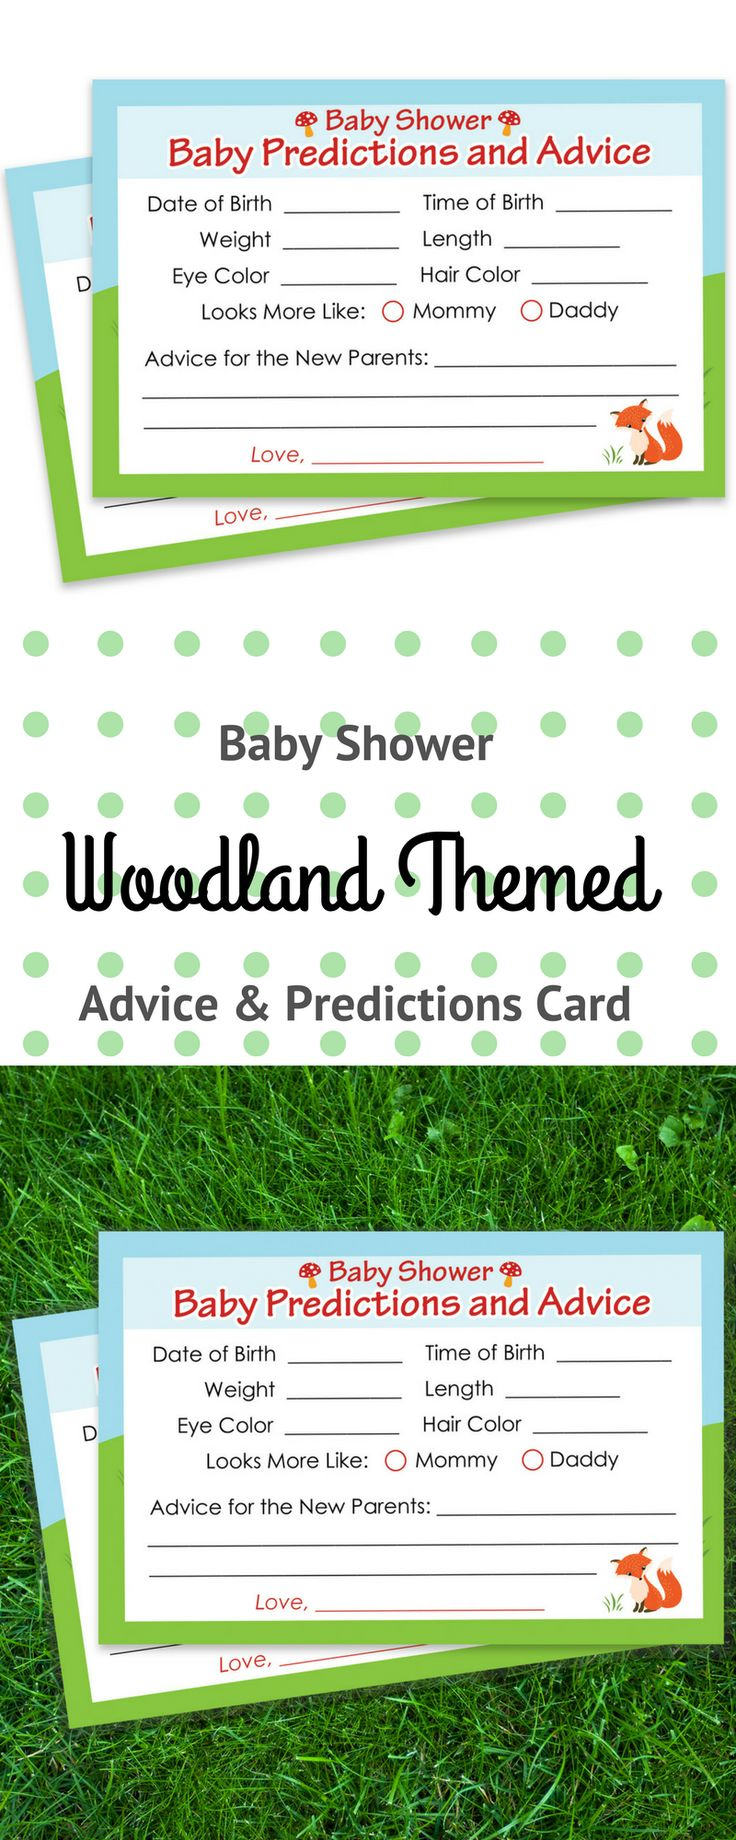 Baby Shower Advice and Predictions Cards - for Up to 20 Guests.Woodland AnimalsThemeis Perfect for OutdoorBaby Showers, Boy Baby Showers, or Gender Neutral Baby Showers.